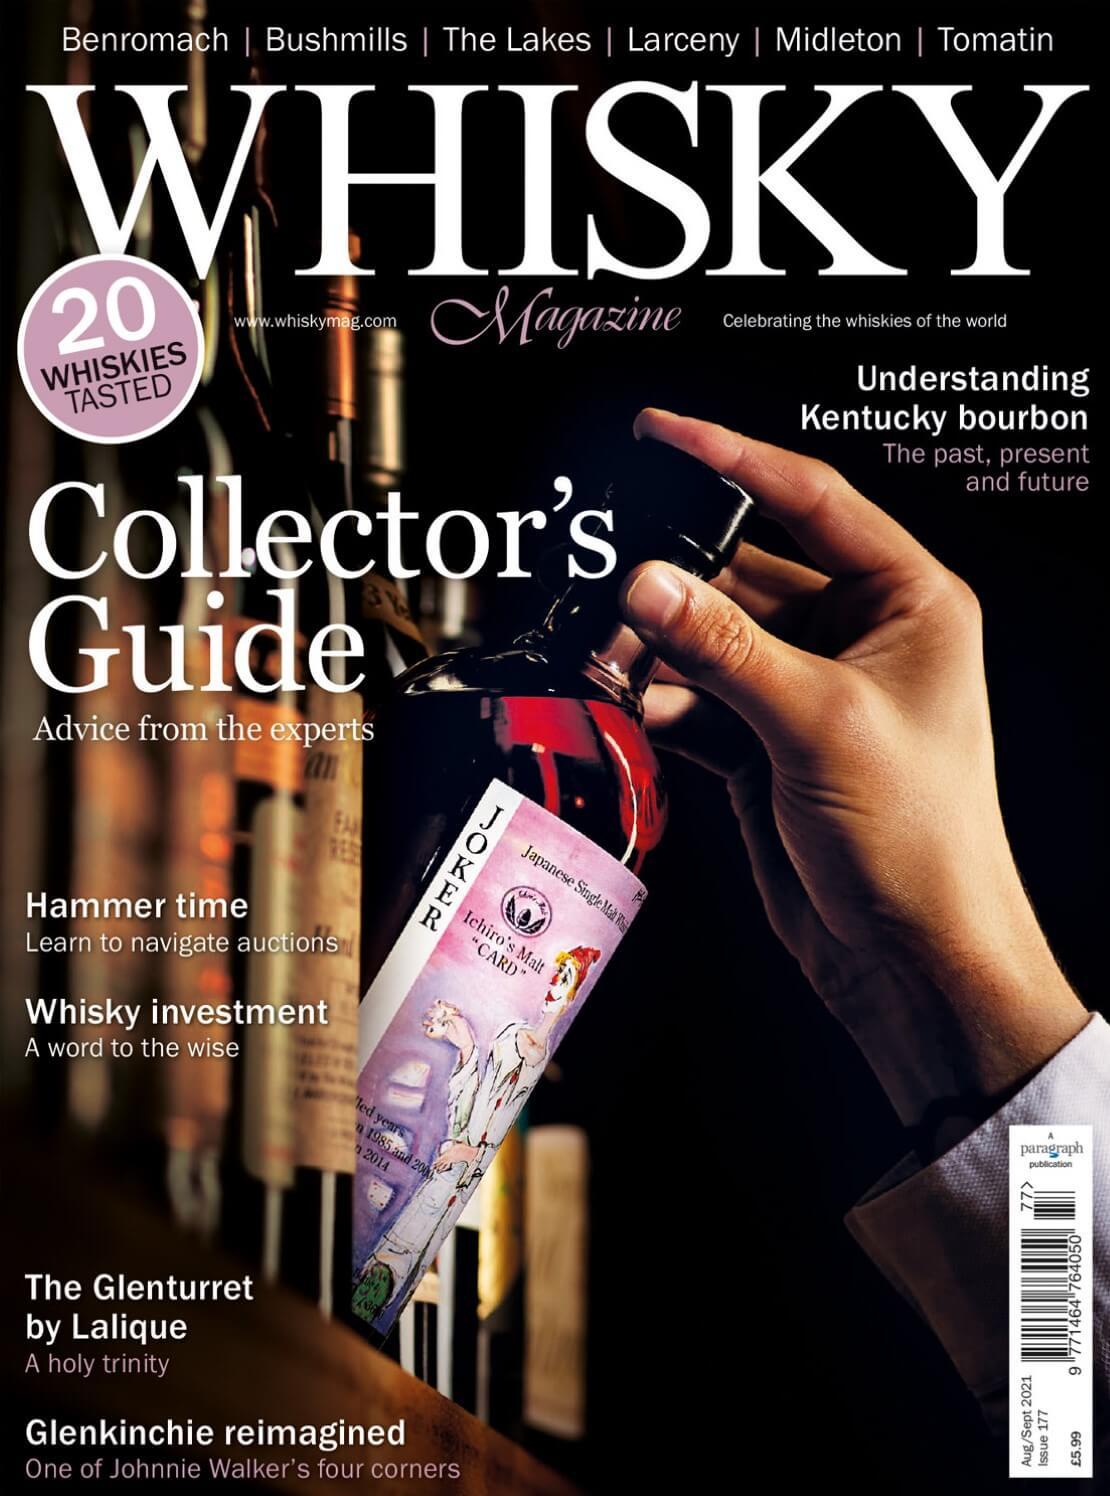 Collector's guide, Learning to navigate auctions, Whisky investment, The Glenturret by Lalique, Glenkinchie reimagined, Understanding...